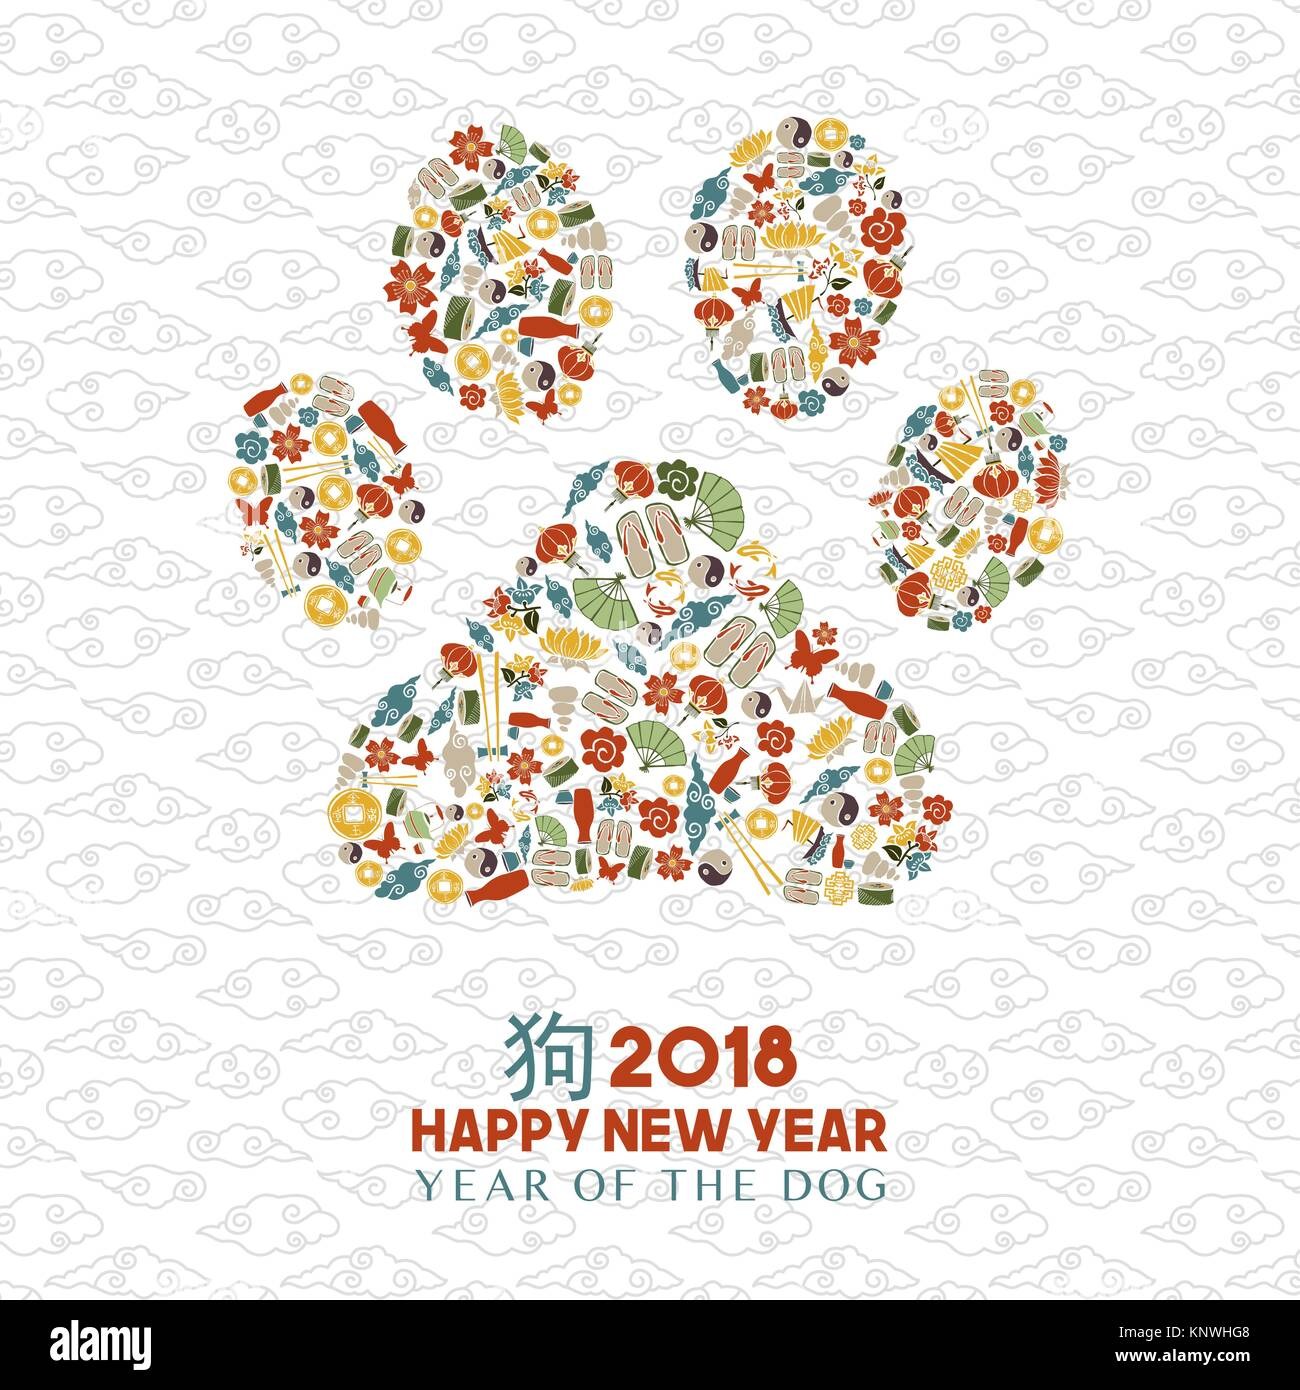 happy chinese new year 2018 greeting card illustration with traditional asian culture icons making dog paw shape eps10 vector